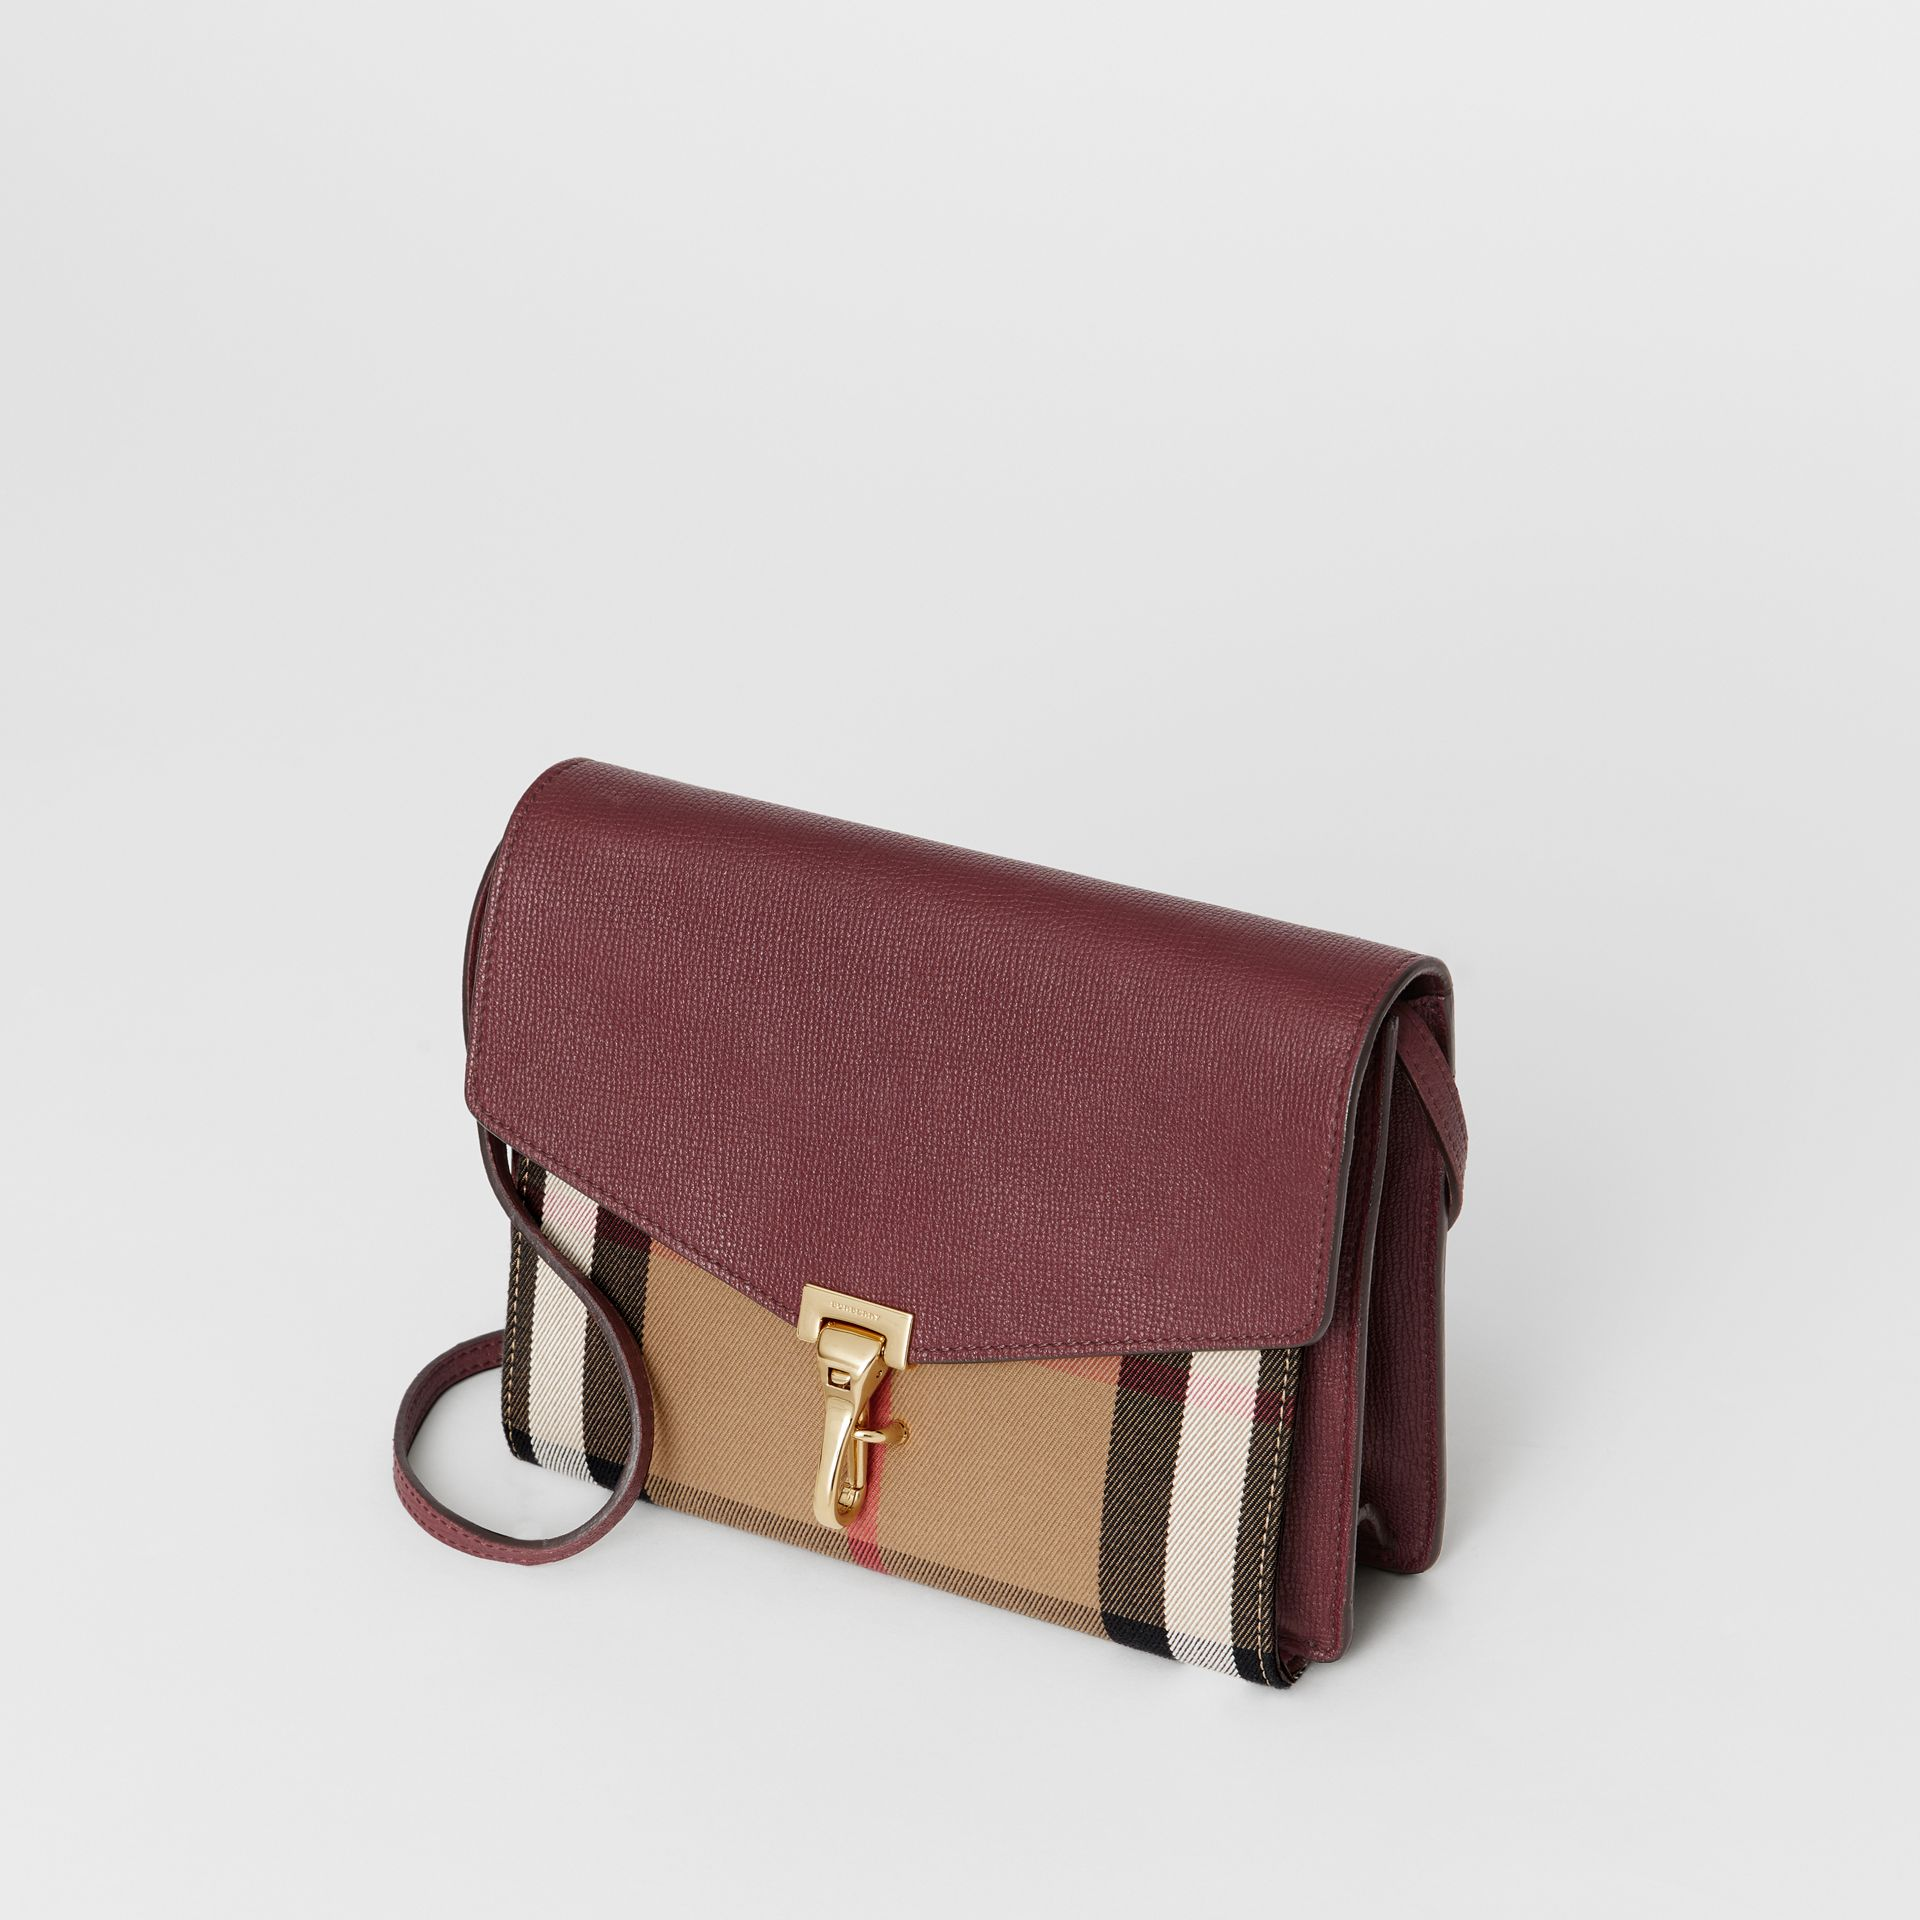 Small Leather and House Check Crossbody Bag in Mahogany Red - Women | Burberry Singapore - gallery image 4